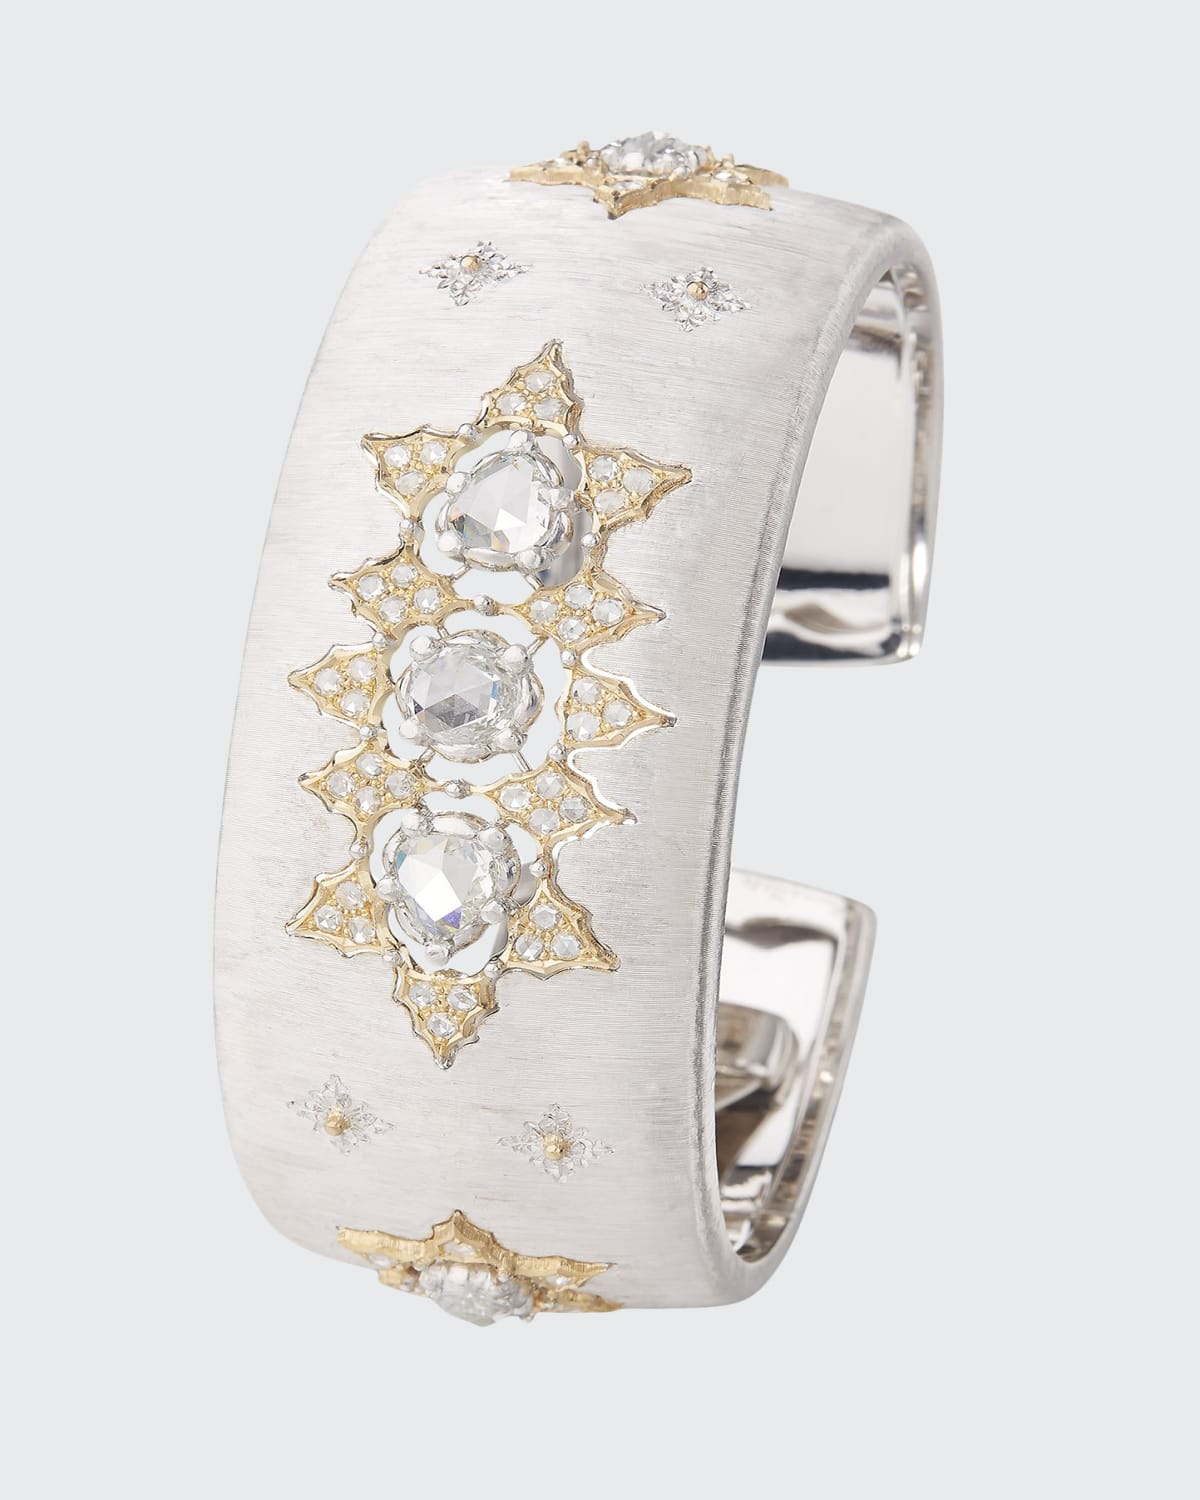 Limited Edition Cuff Bracelet in 18k White and Rose Gold with Rose Cut Diamonds